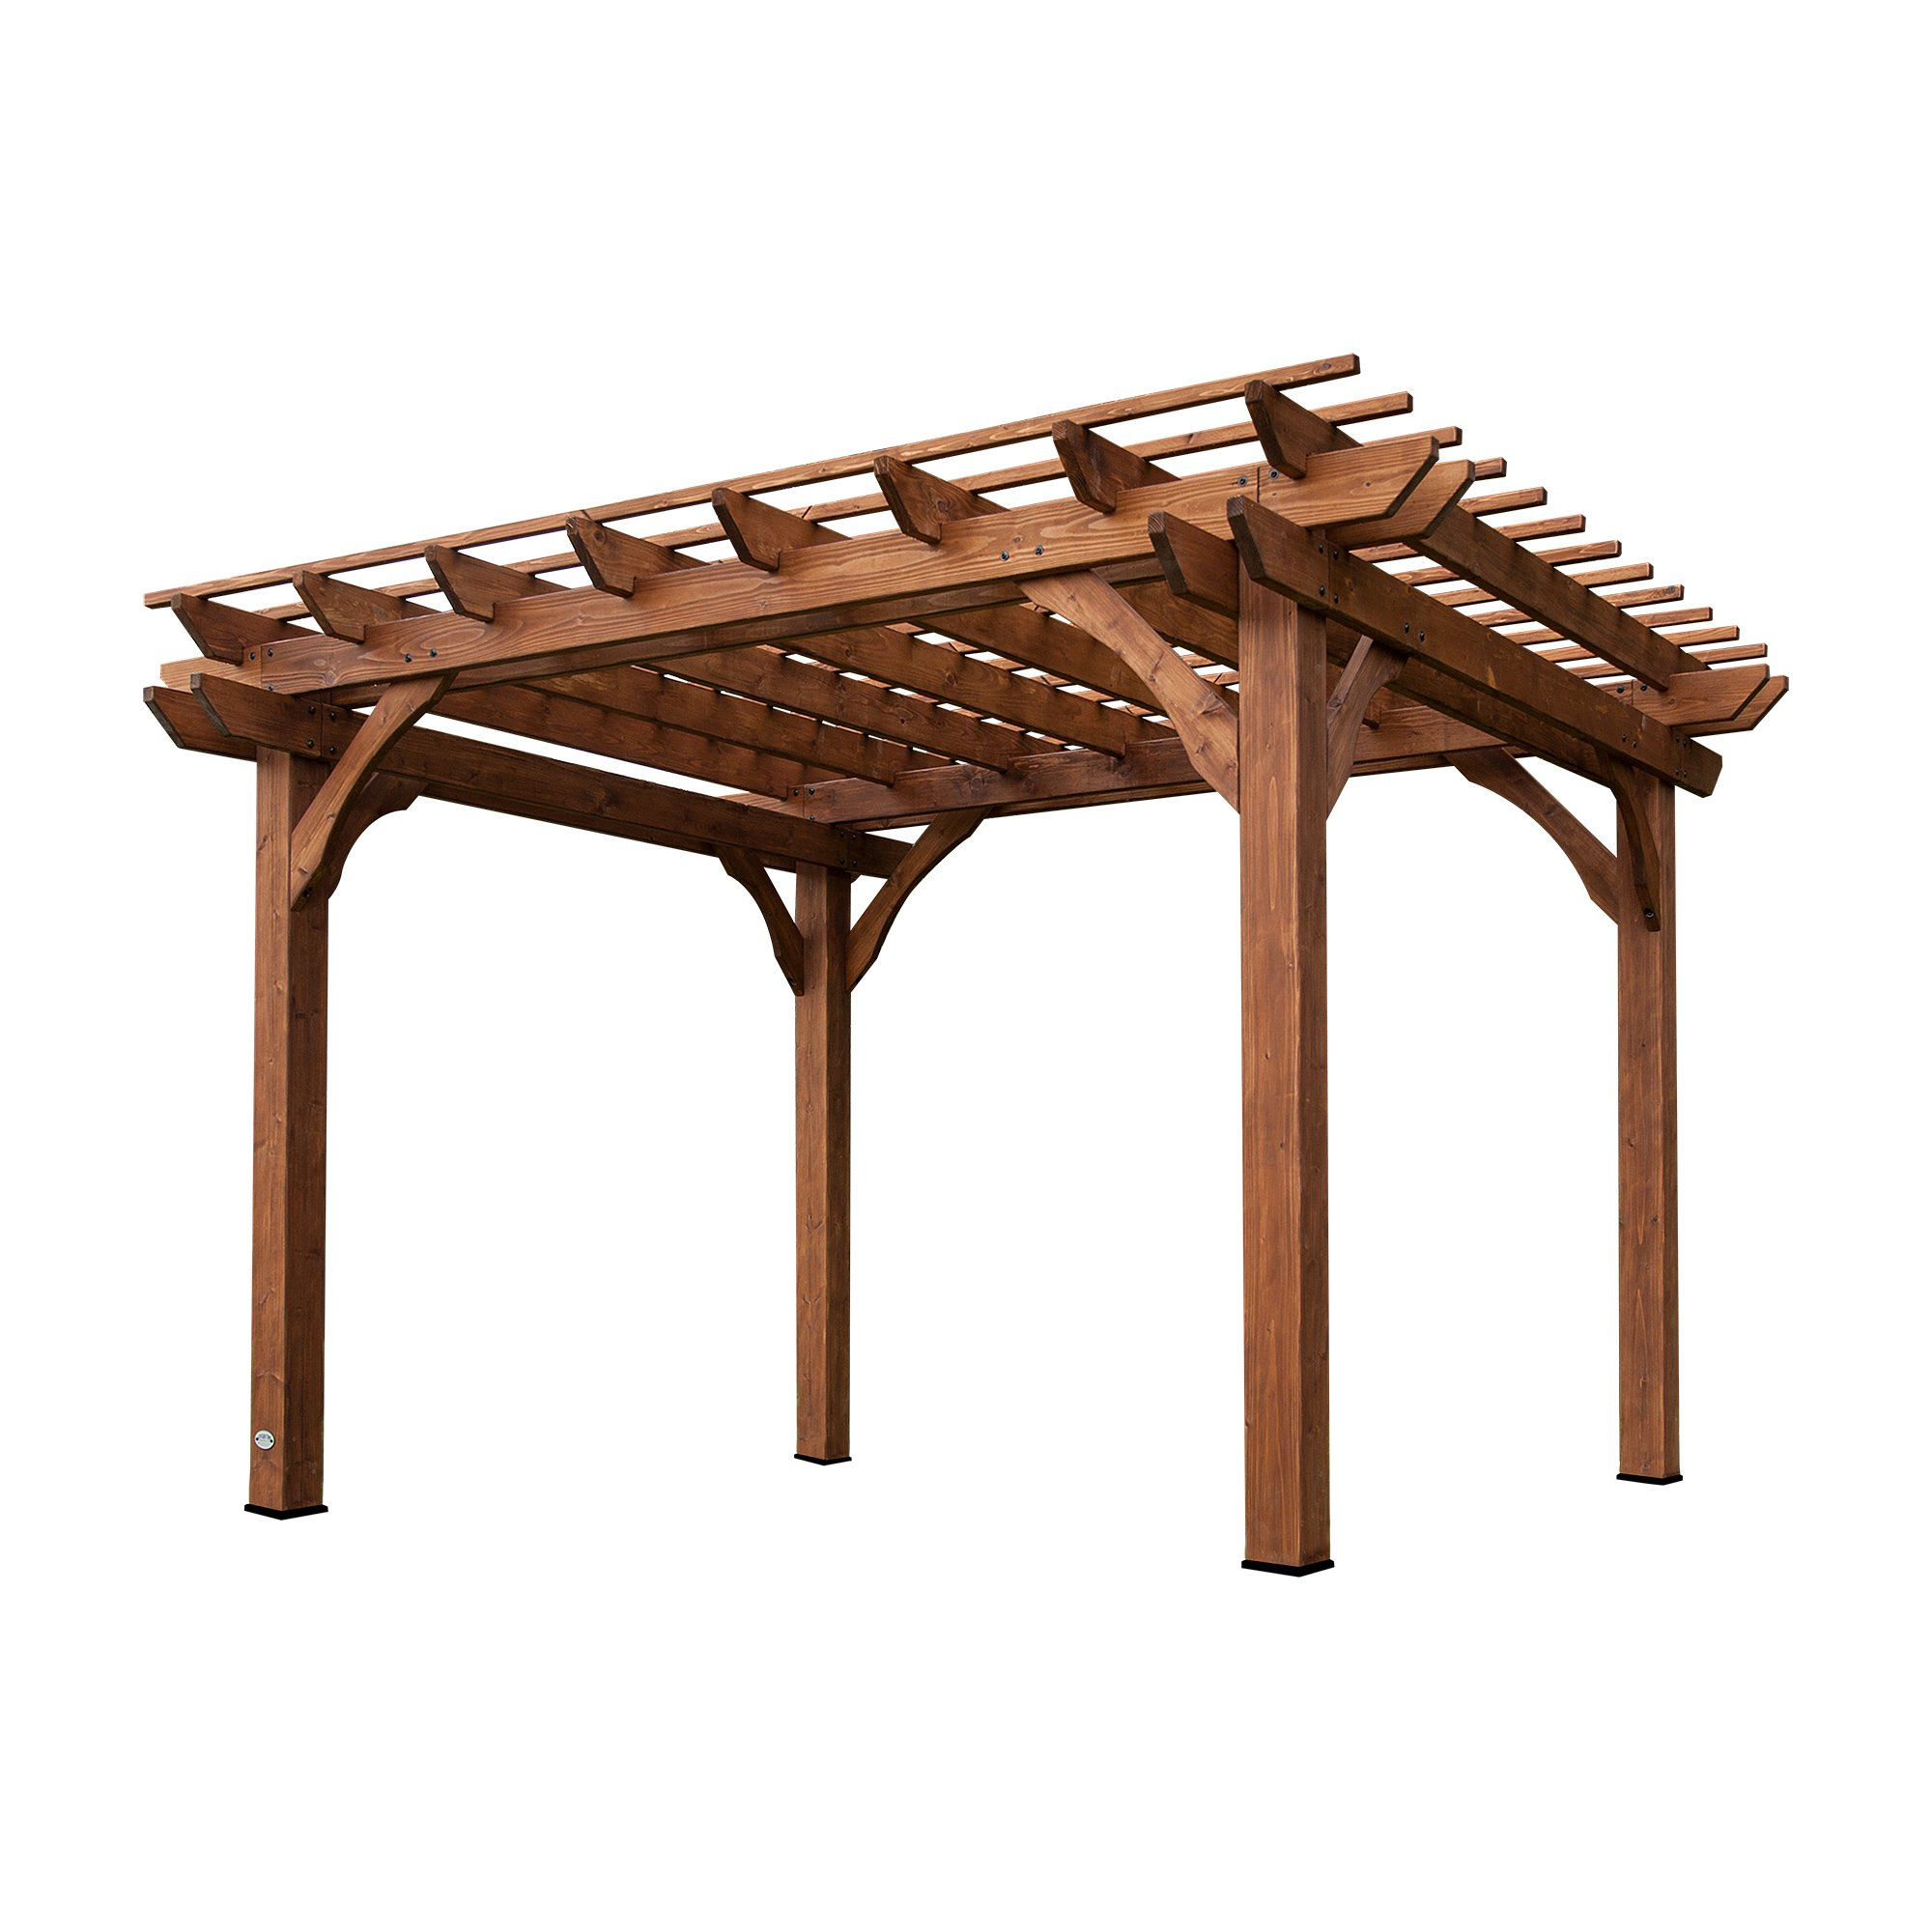 Backyard Discovery Cedar Pergola 12\u0027 by ...  sc 1 st  Amazon.com : patio cover kits - amorenlinea.org